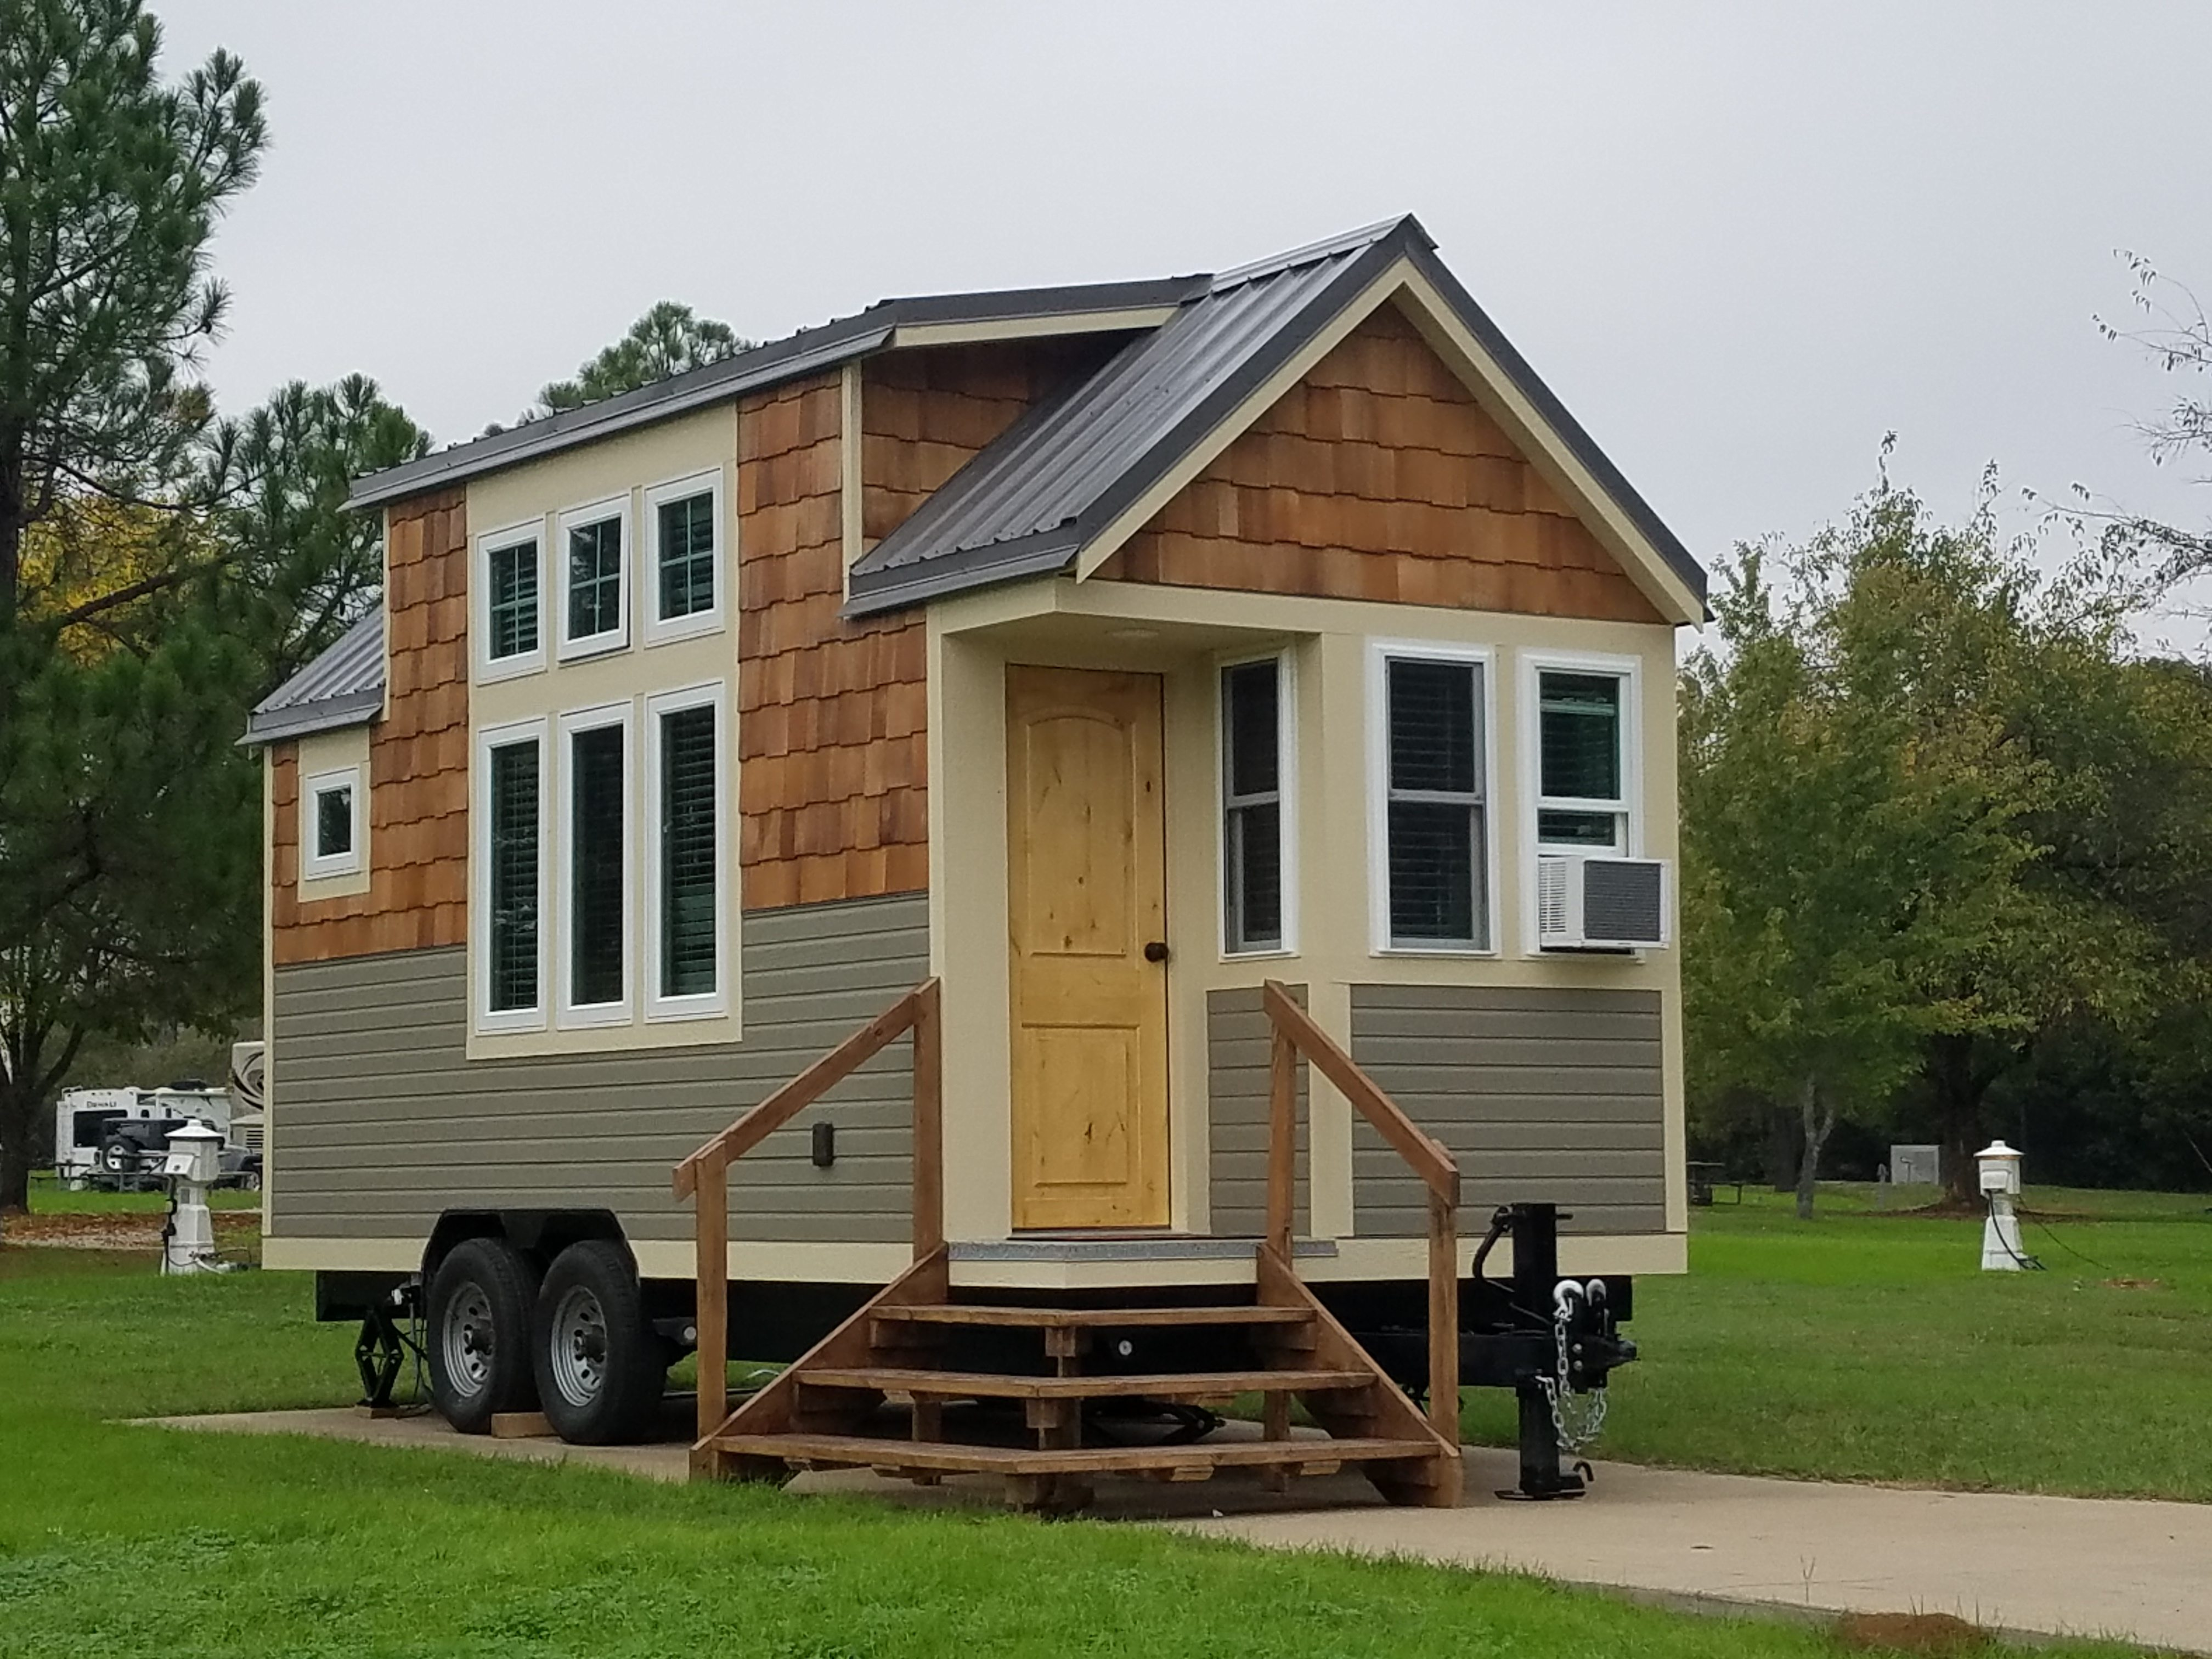 Tiny Home Designs: Cozy Escape In A Tiny House In Canton, Texas